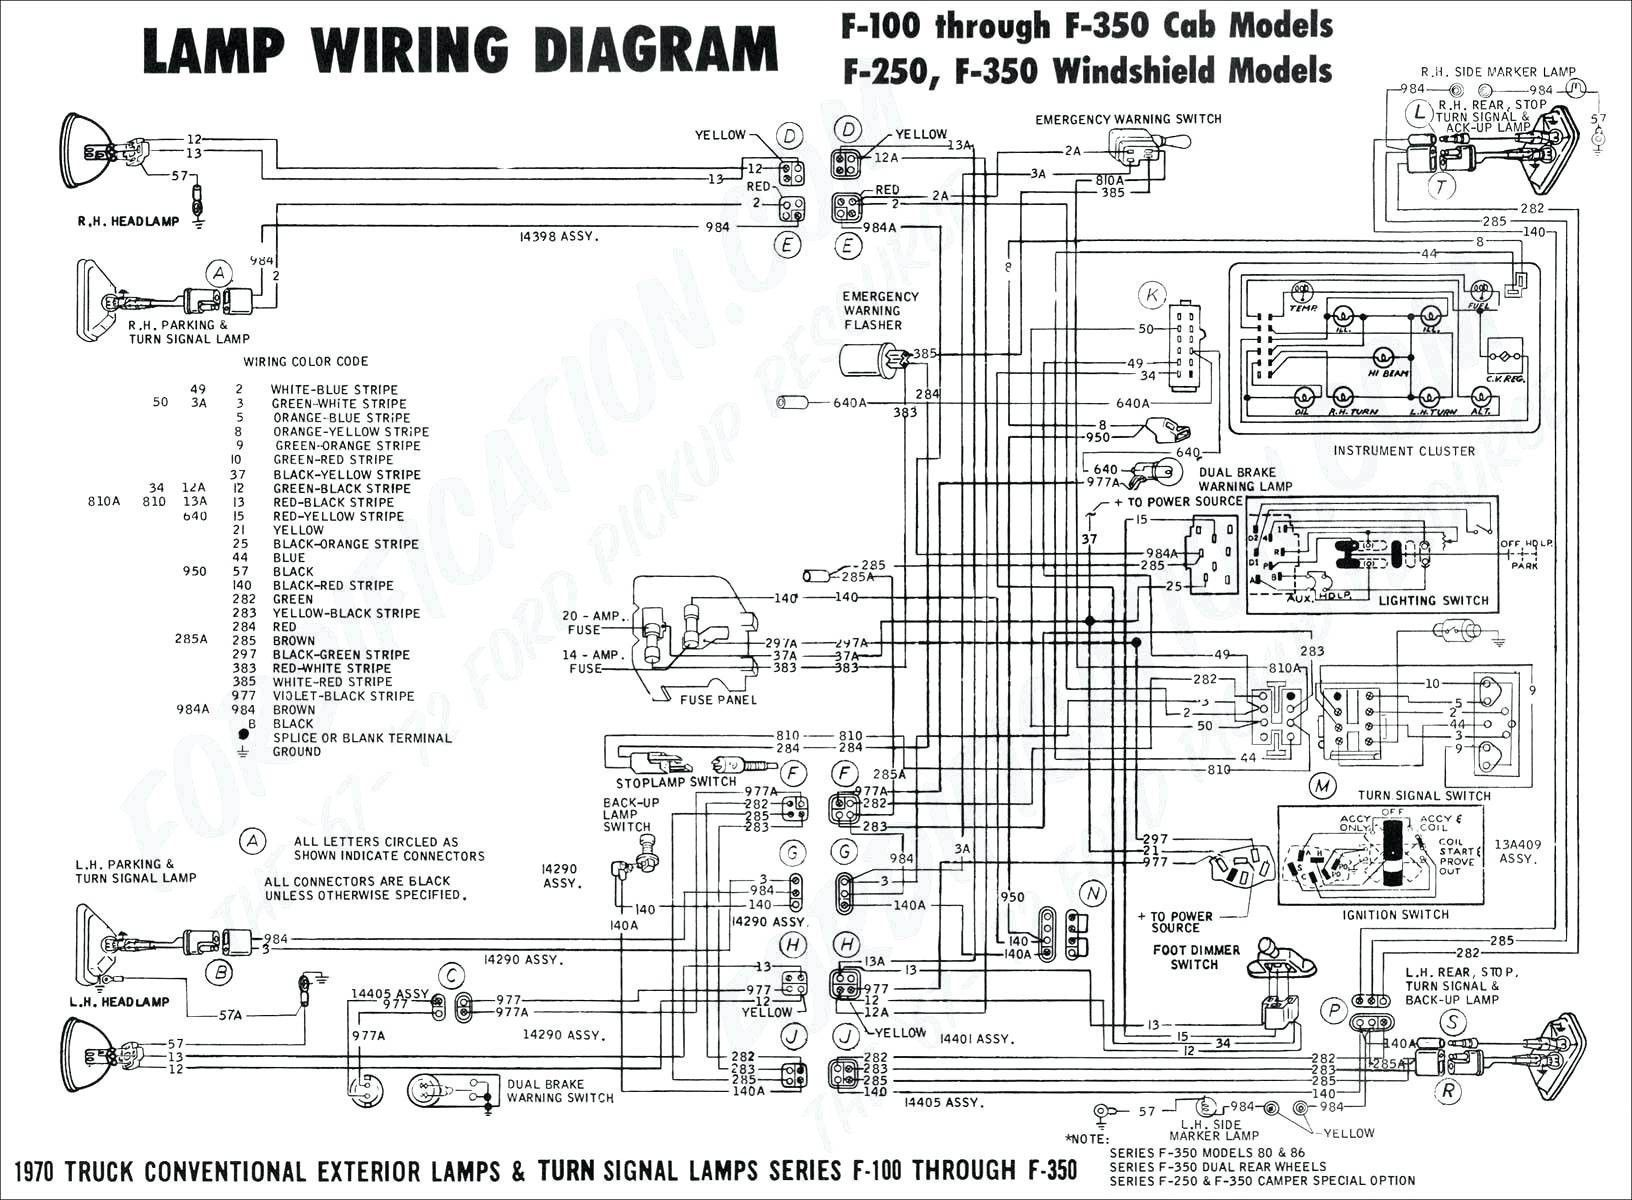 2003 Trailblazer Tail Light Circuit Diagram Awesome In 2020 Electrical Diagram Trailer Wiring Diagram Electrical Wiring Diagram